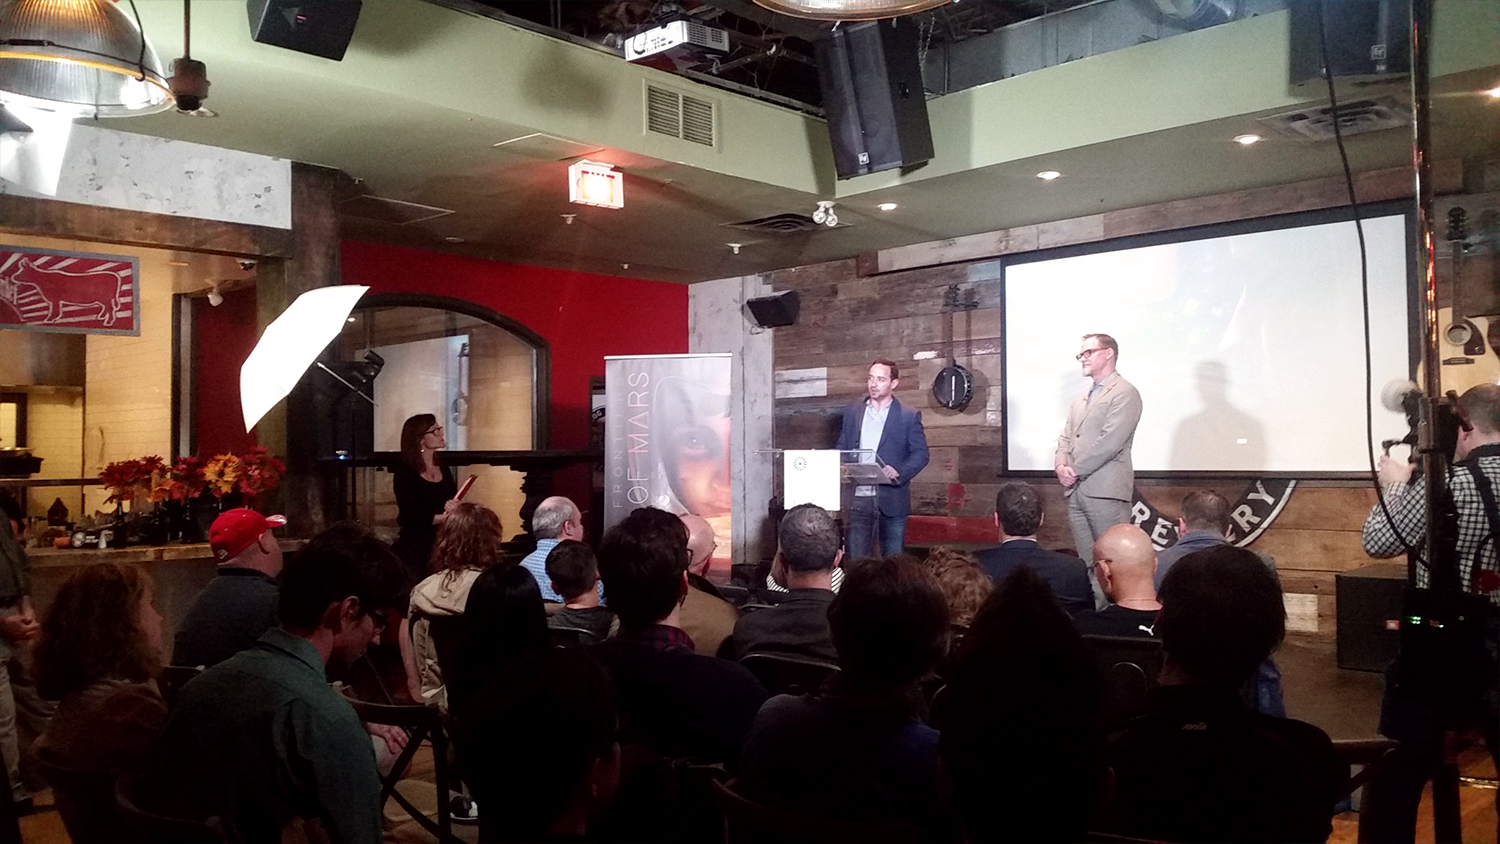 Dan Stopnicki answering questions at the Dawn Of Mars launch event in Ottawa.